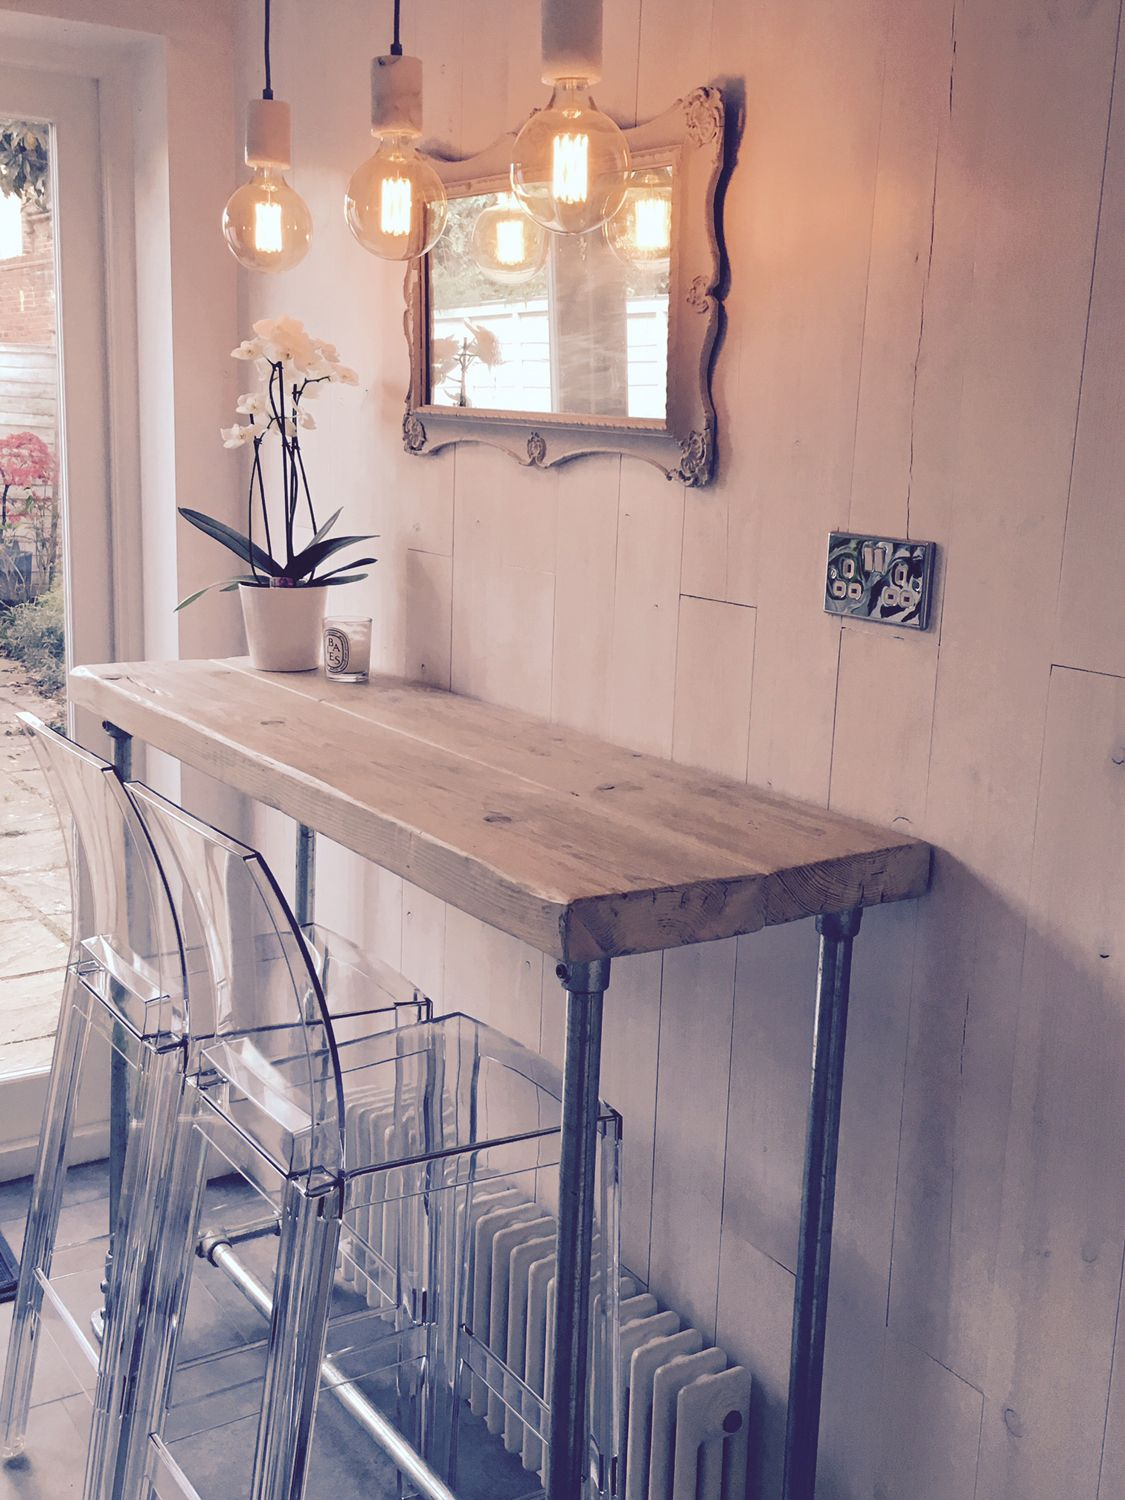 Pictures Of Small Kitchens With Breakfast Bar